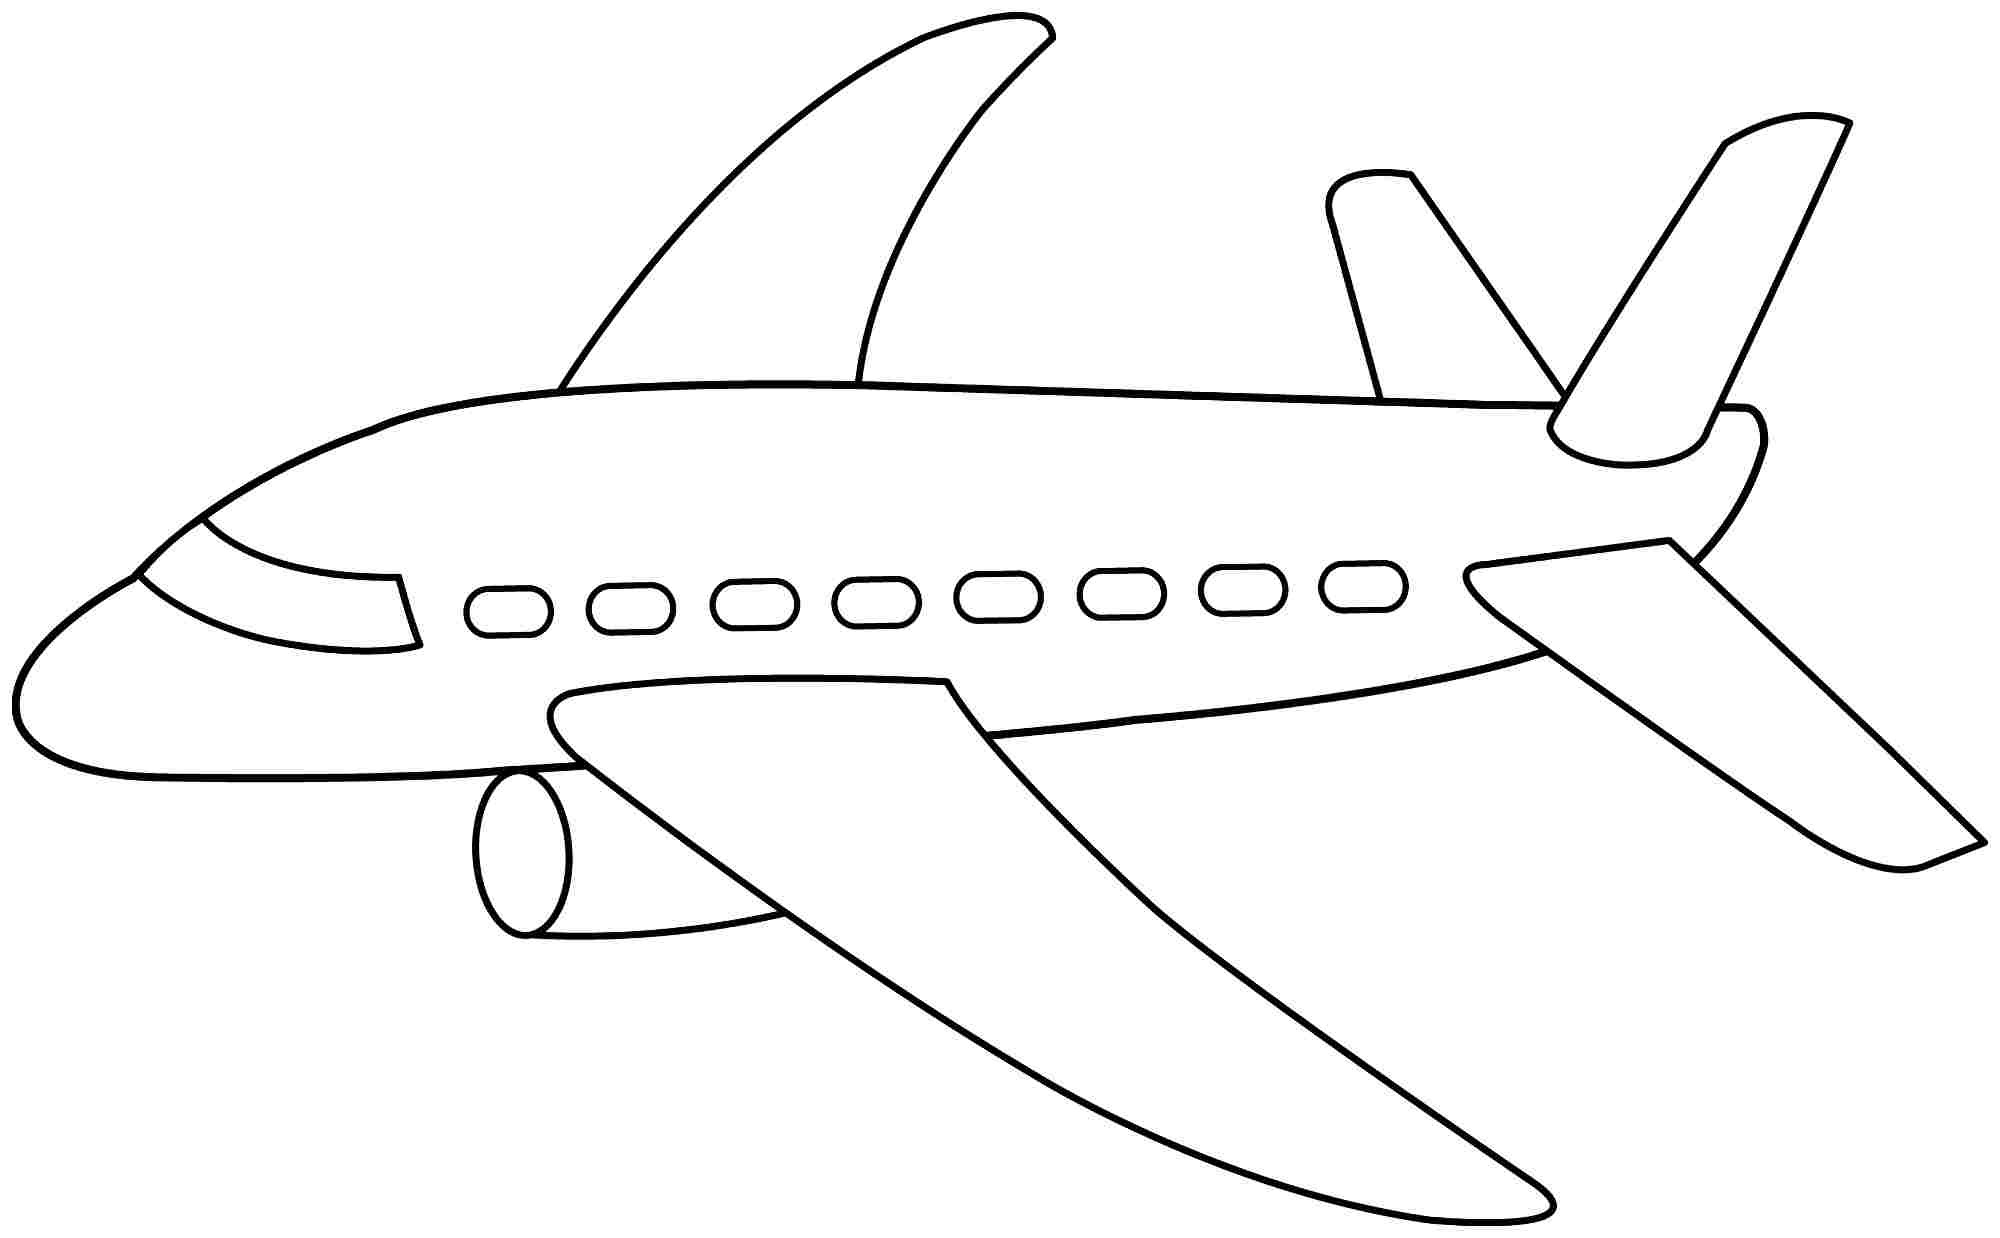 Best ideas about Planes Coloring Pages For Kids . Save or Pin Plane Coloring Pages coloringsuite Now.